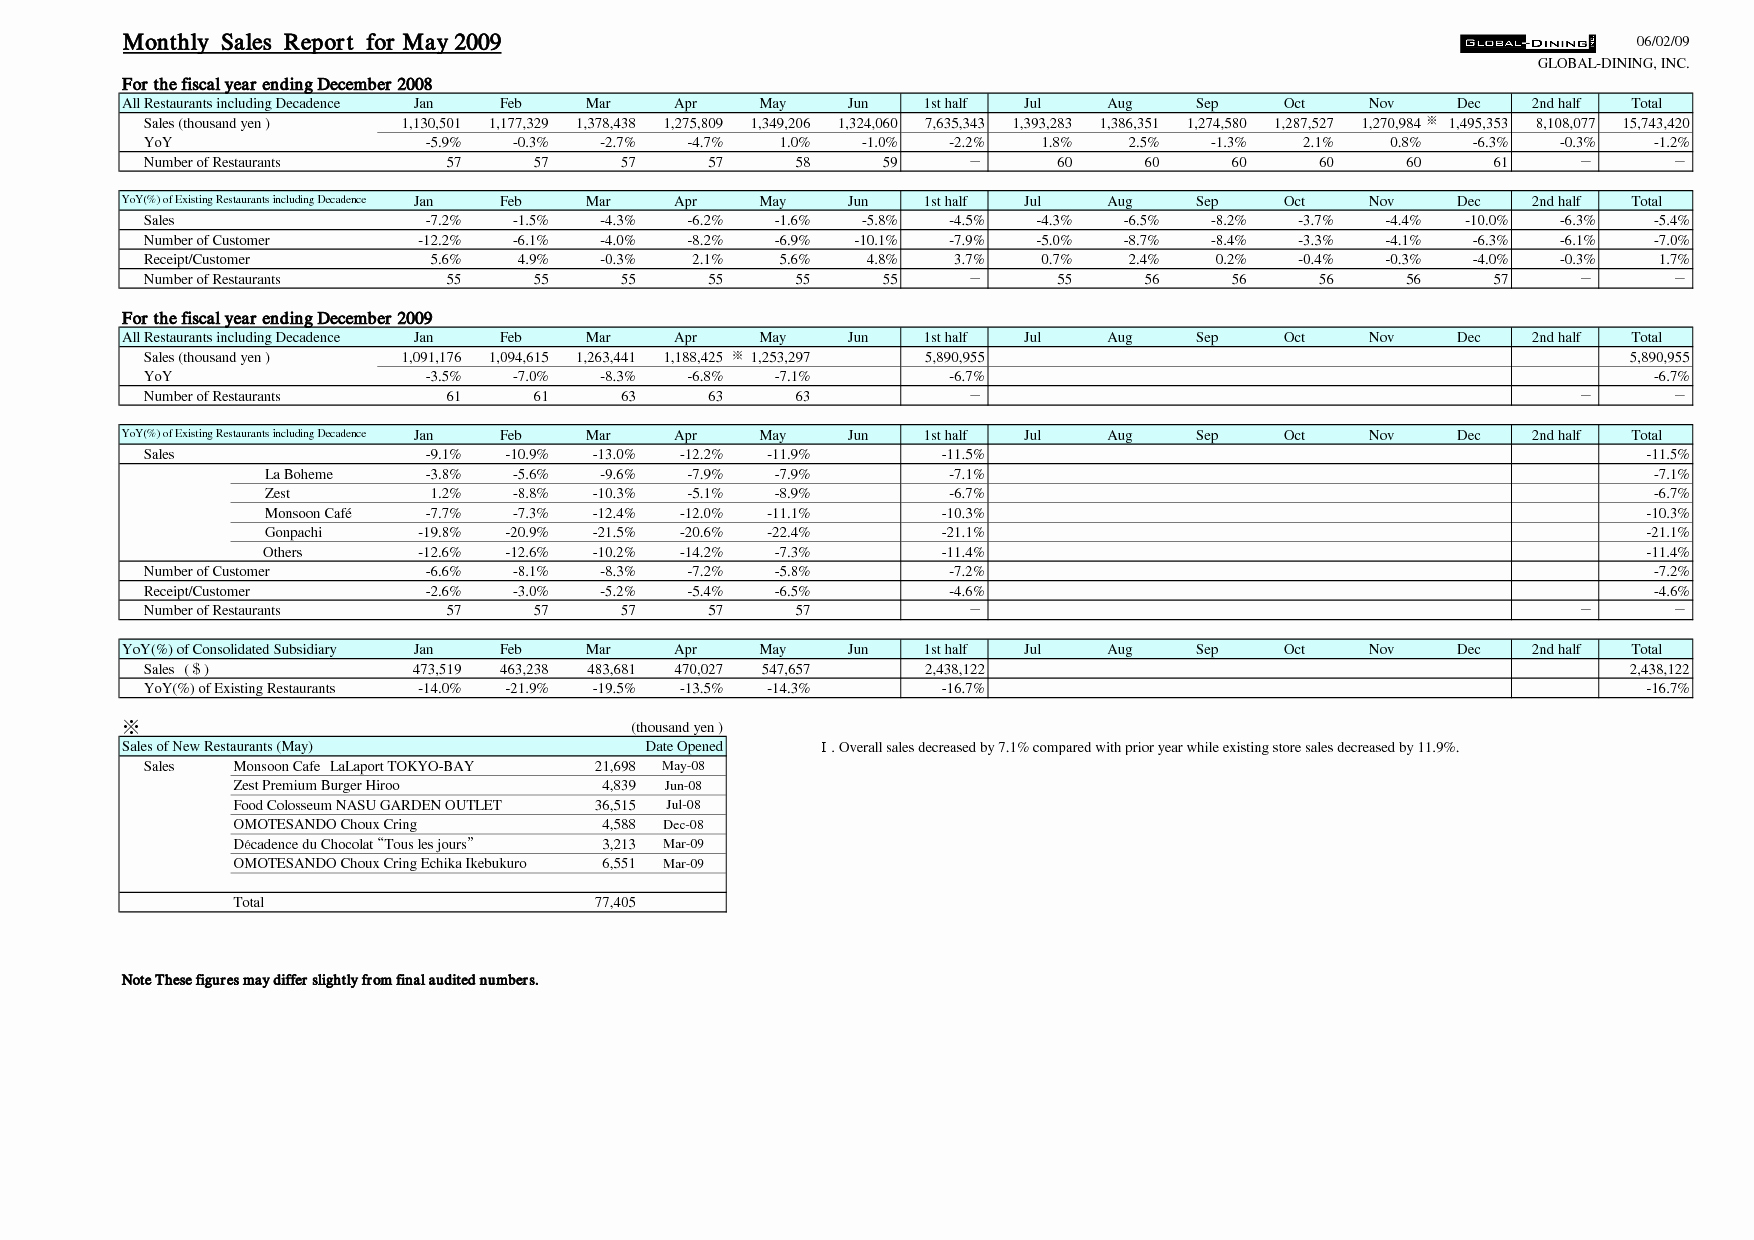 Monthly Sales Report Template Excel Luxury Exceptional Quarterly Sales Report Spreadsheet Template